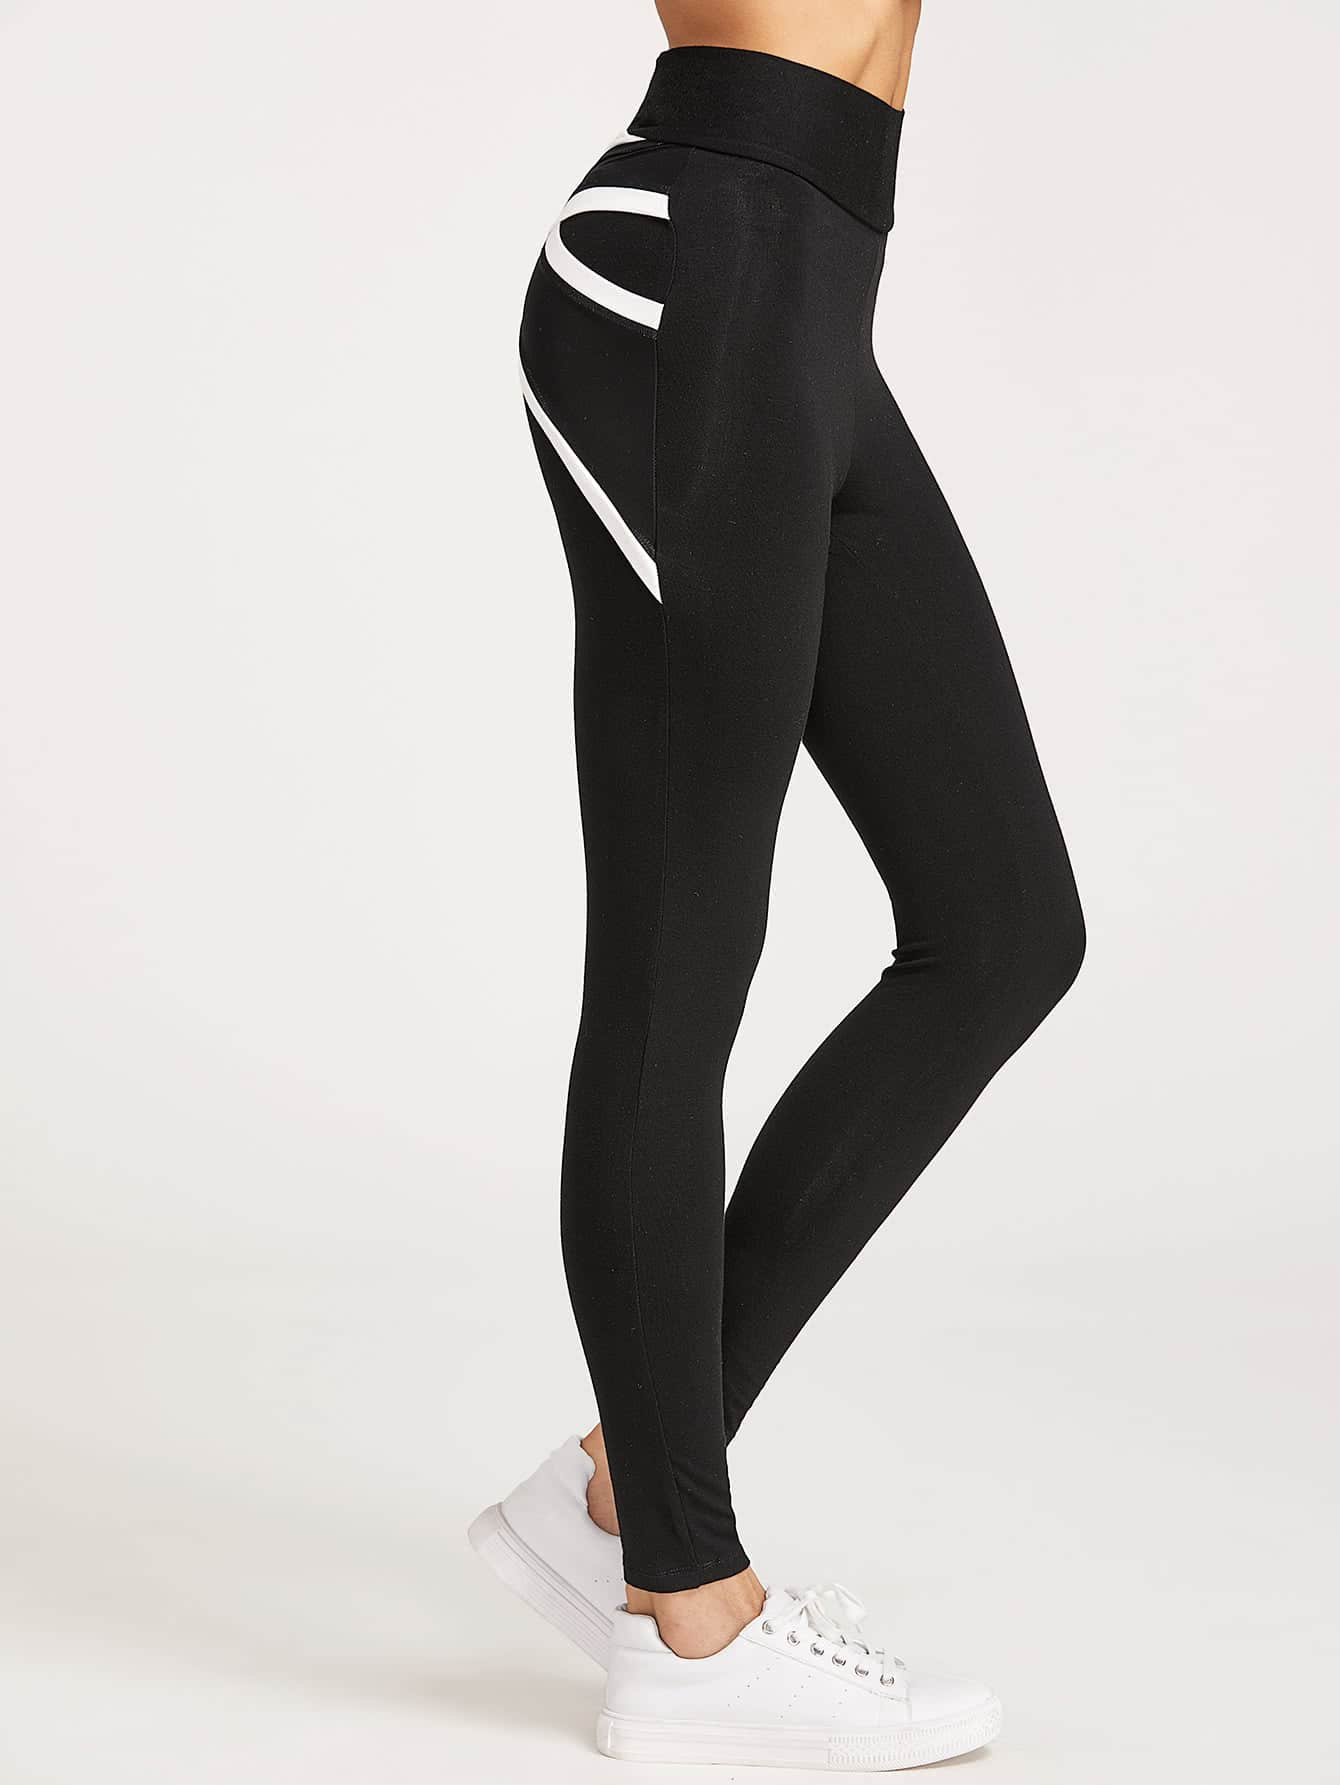 Contrast Trim Crisscross Mesh Back Leggings -SheIn(Sheinside)